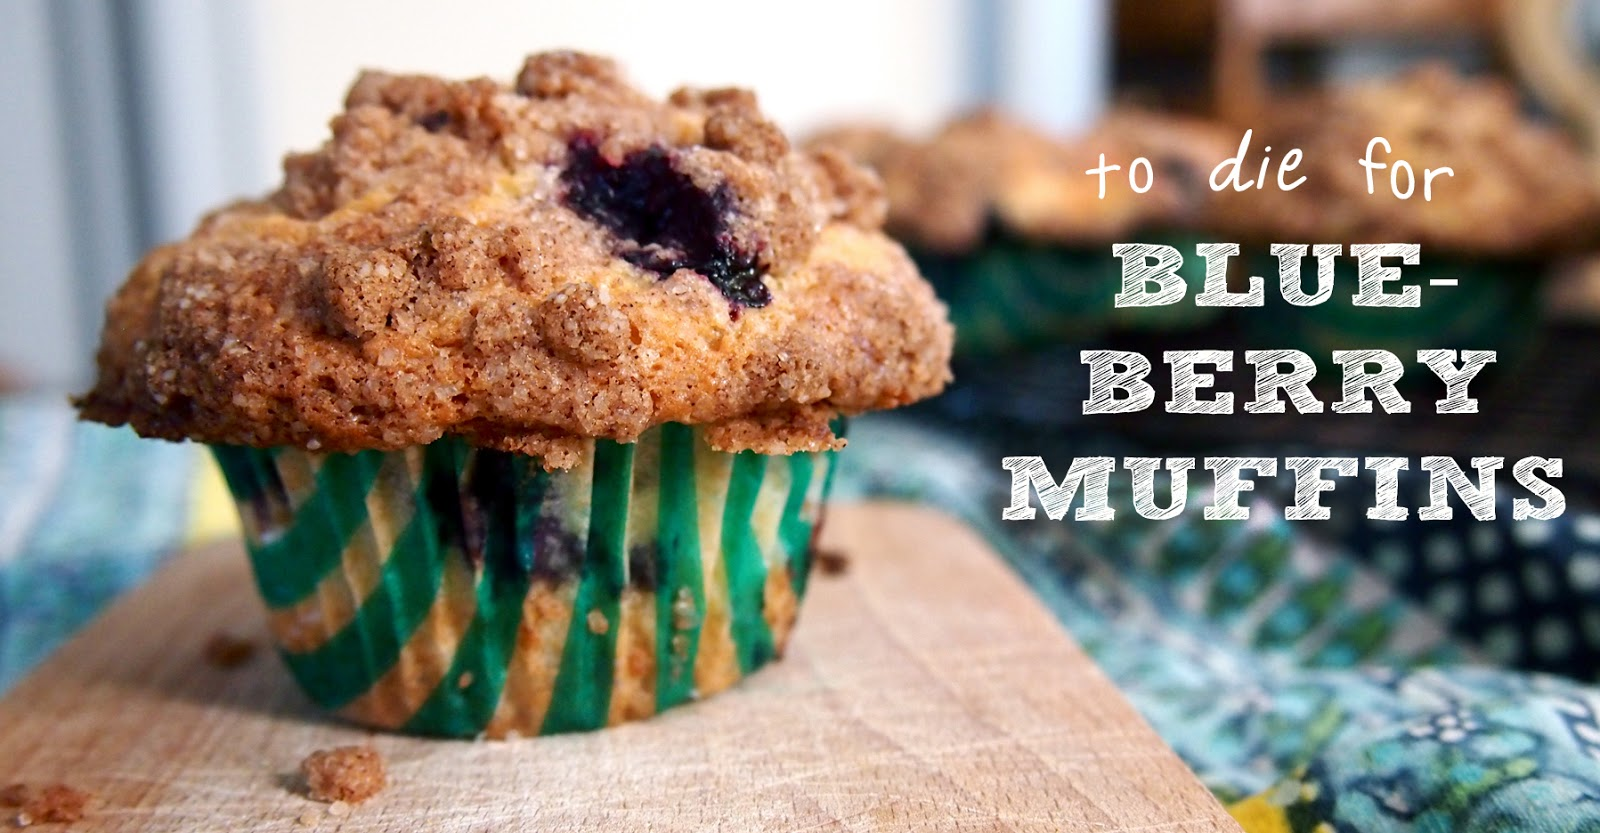 On High Occasions: To Die For Blueberry Muffins